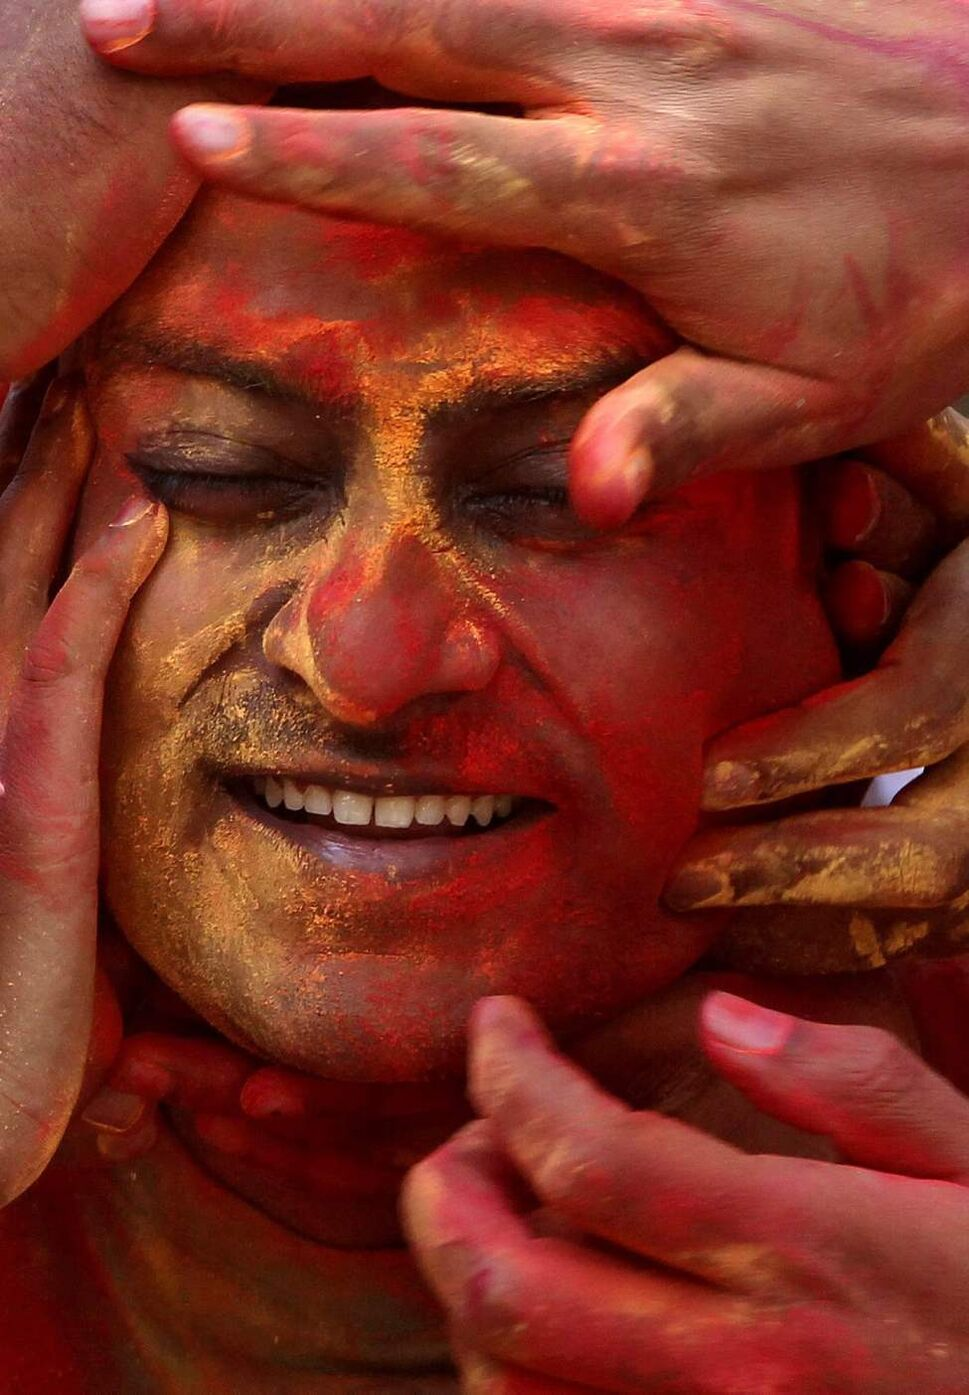 A man reacts as his face is smeared with colored powder by friends during Holi festivities in Mumbai, India, Thursday, March 8, 2012. Holi, the Hindu festival of colors, also heralds the coming of spring. (AP Photo/ Rajanish Kakade) (CP)